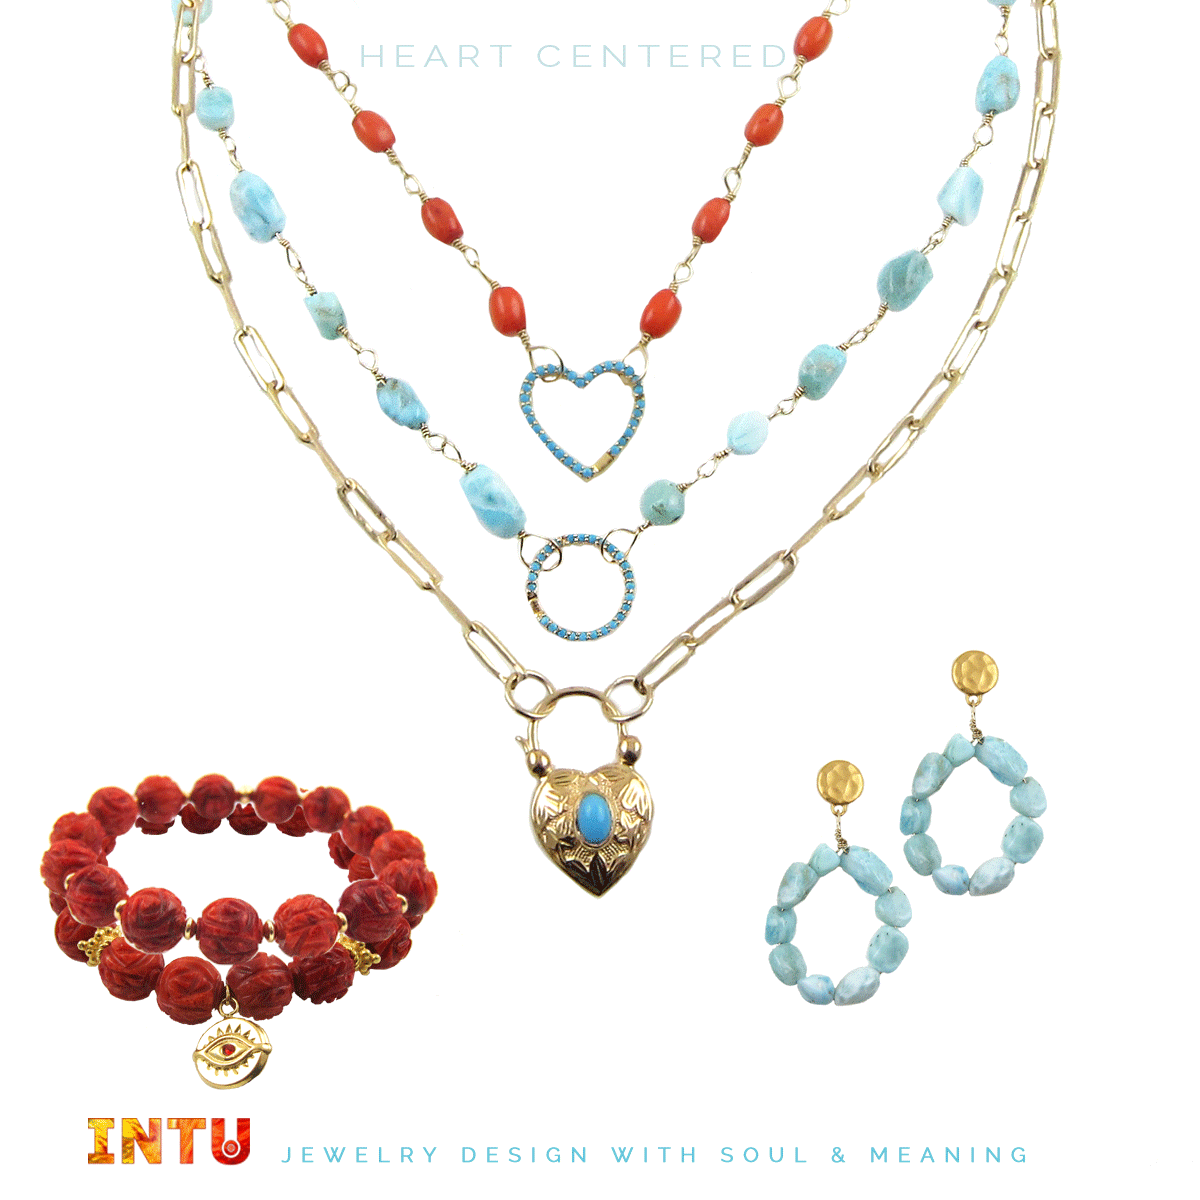 heart centered collection